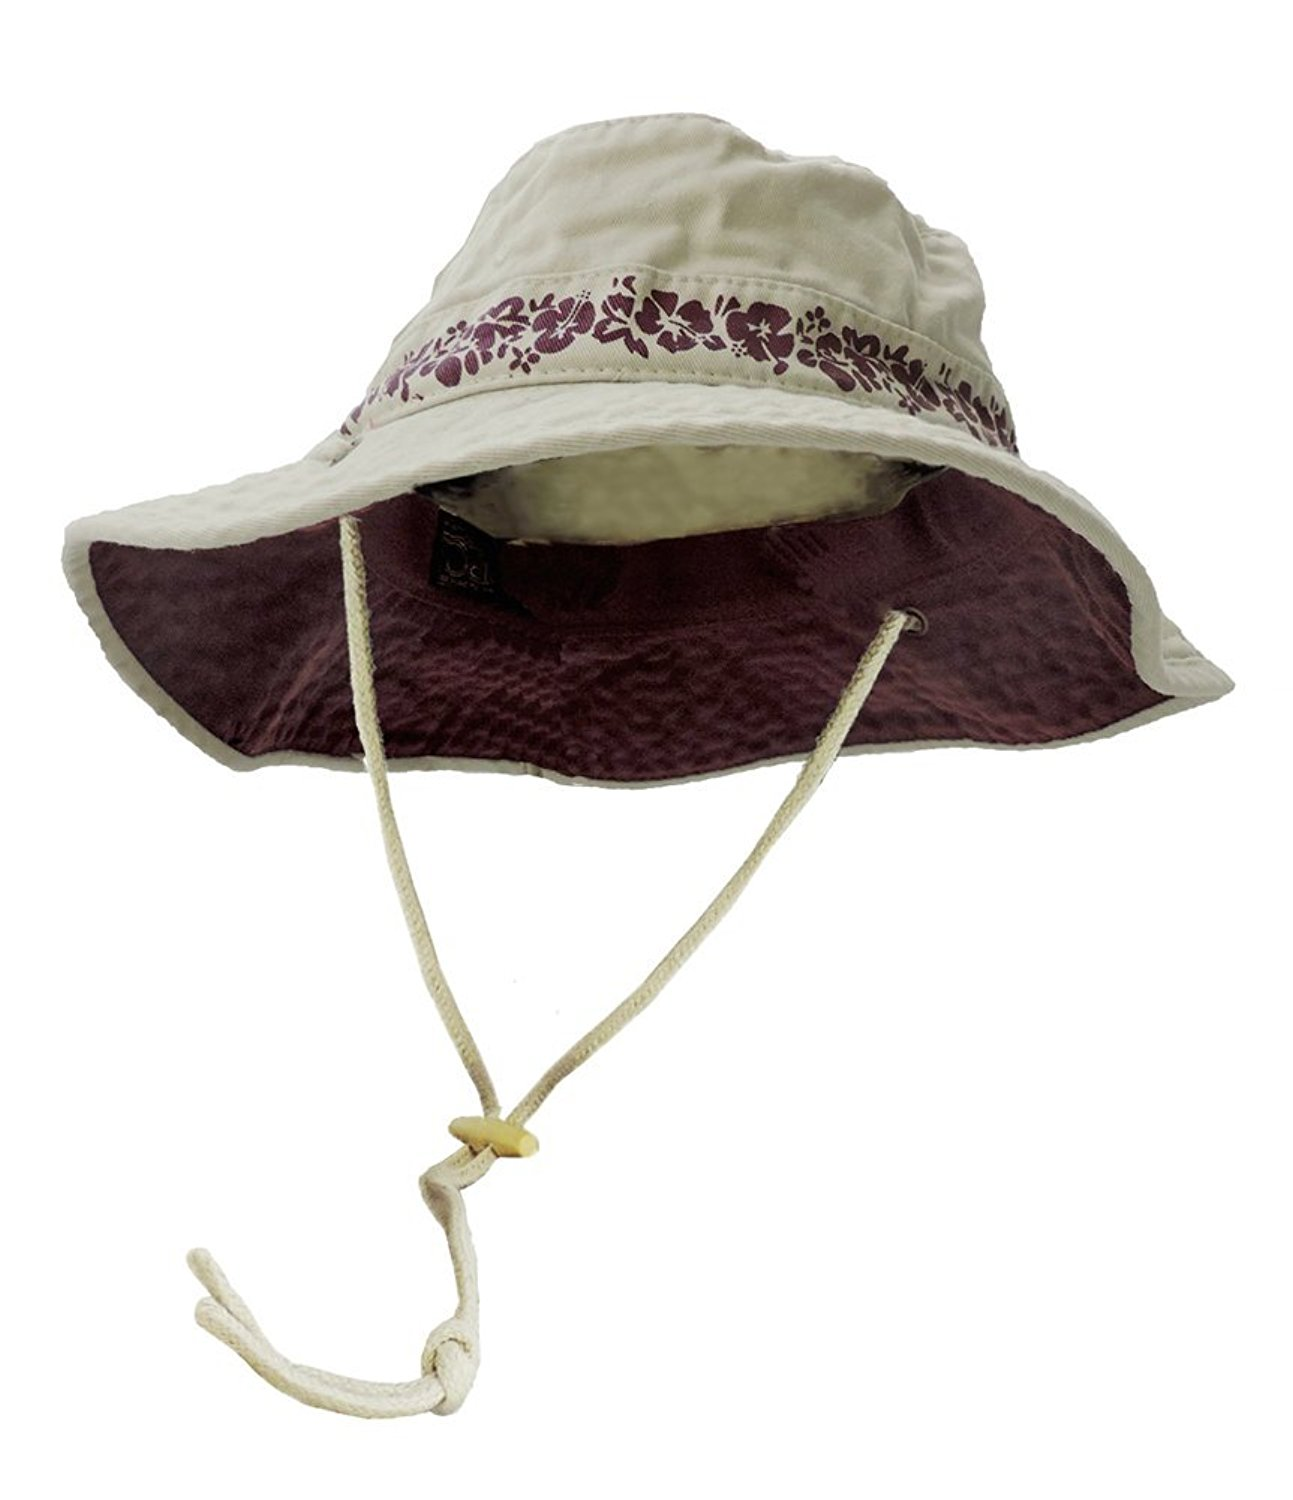 Dorfman Pacific SPF +50 Cotton Twill Boonie Sun Hat With Chin Cord (Large, Burgundy)